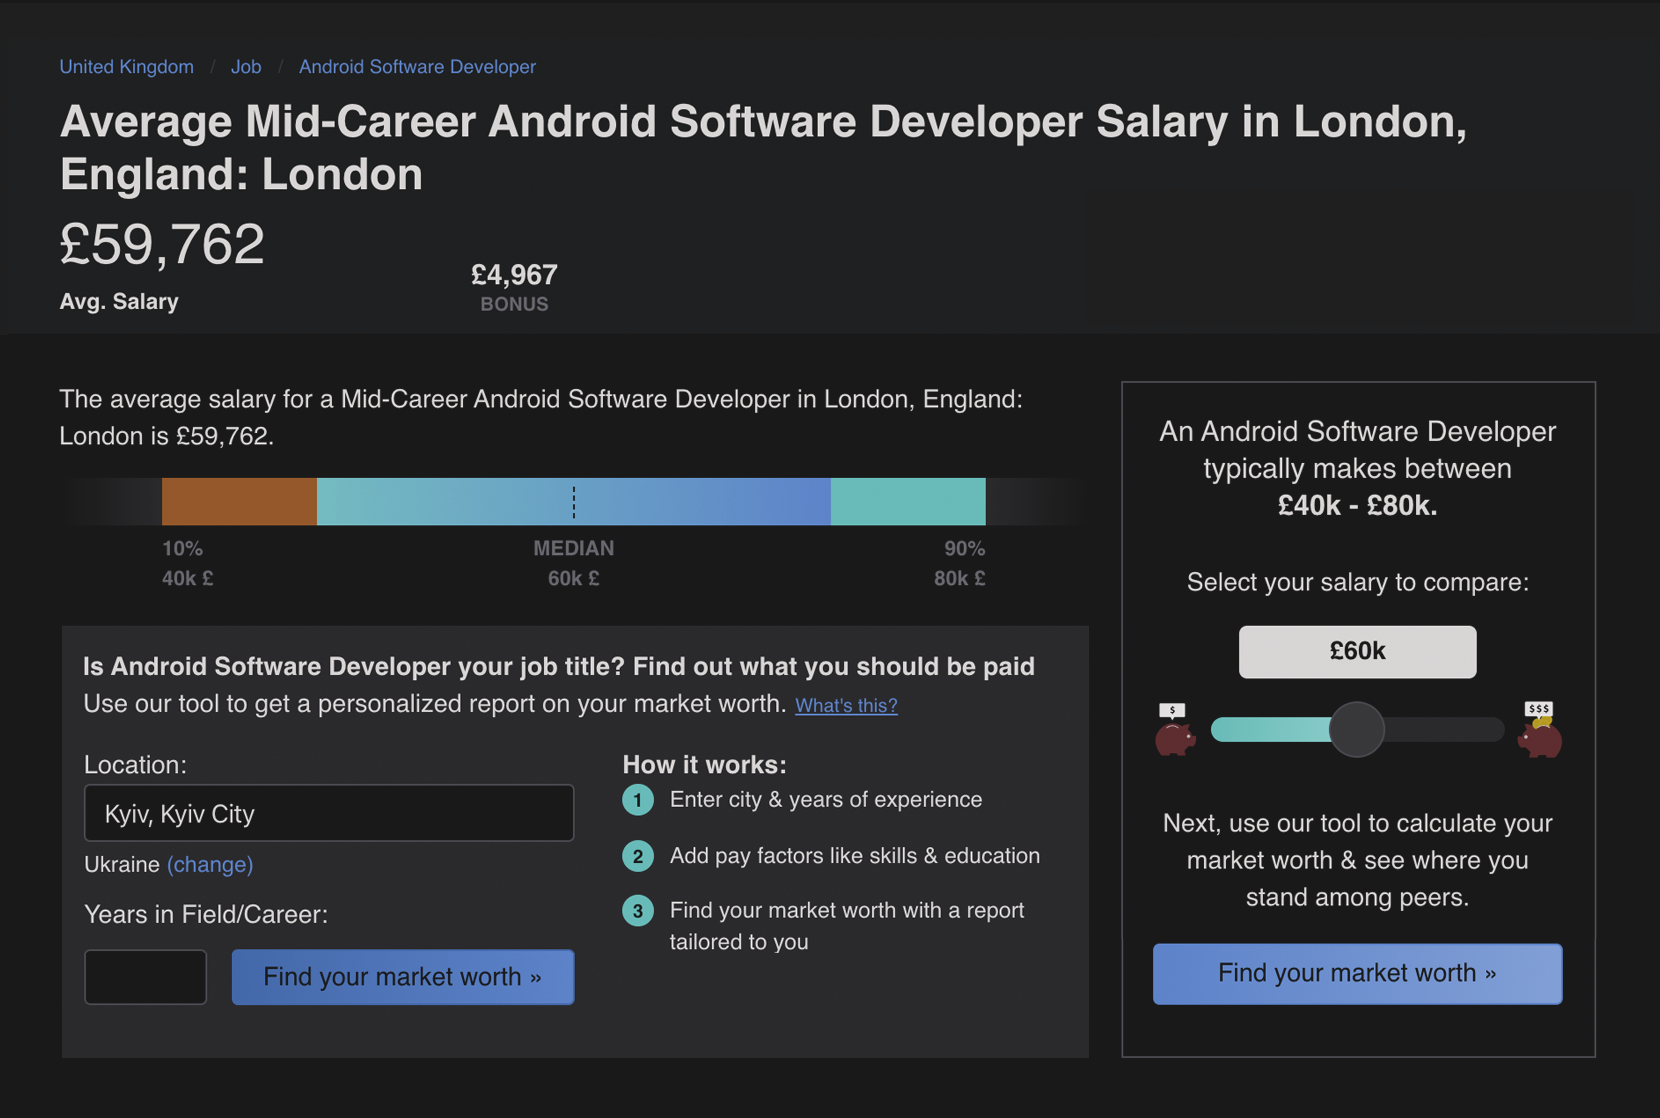 Mid-career Android developer's compensation in London